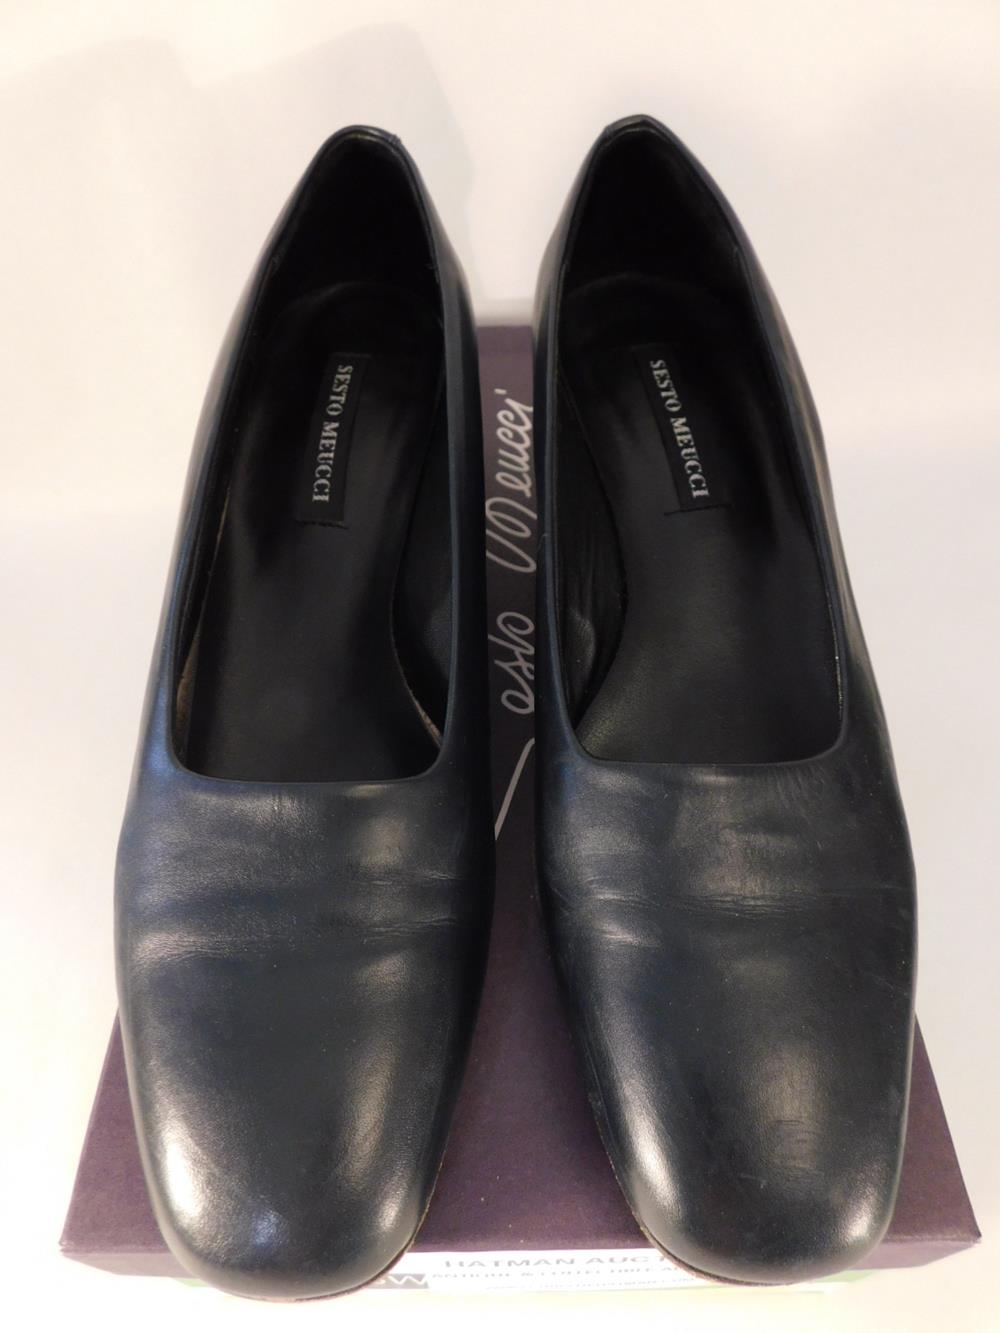 SESTO MEUCCI OF FLORENCE MADE IN ITALY SHOES ESTELLE NAVY CALF SIZE 7.5 N WOMENS DRESS SHOE